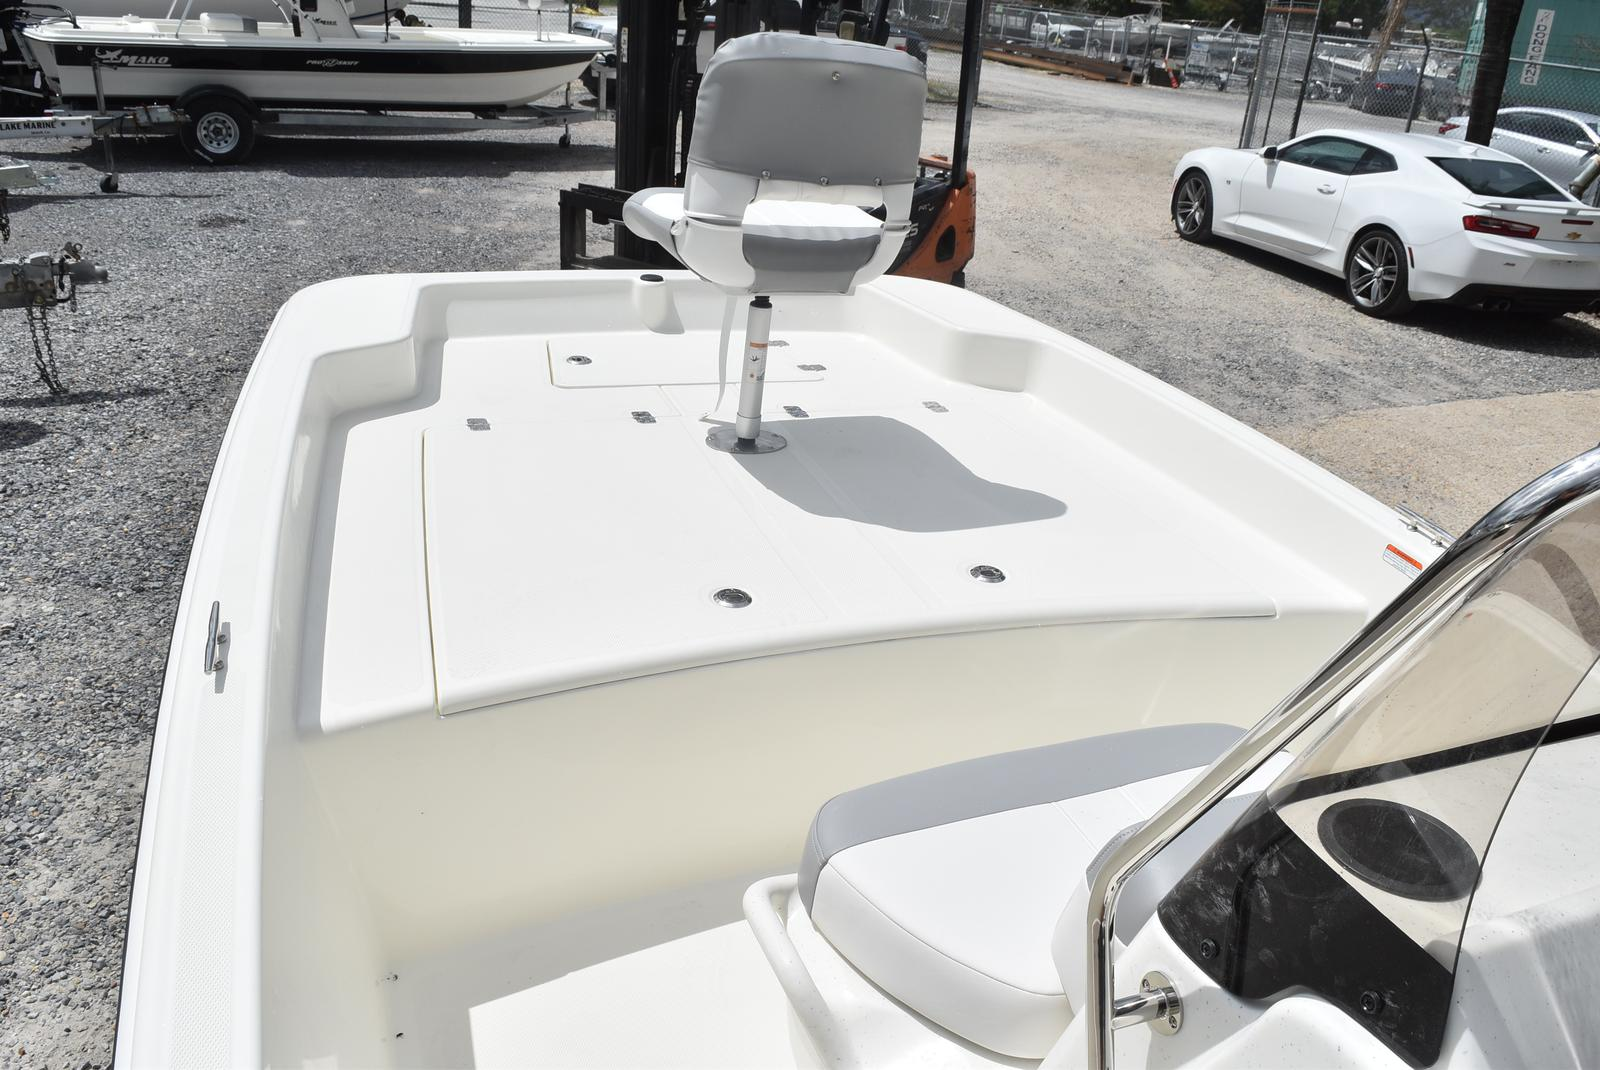 2020 Mako boat for sale, model of the boat is Pro Skiff 17, 75 ELPT & Image # 399 of 702